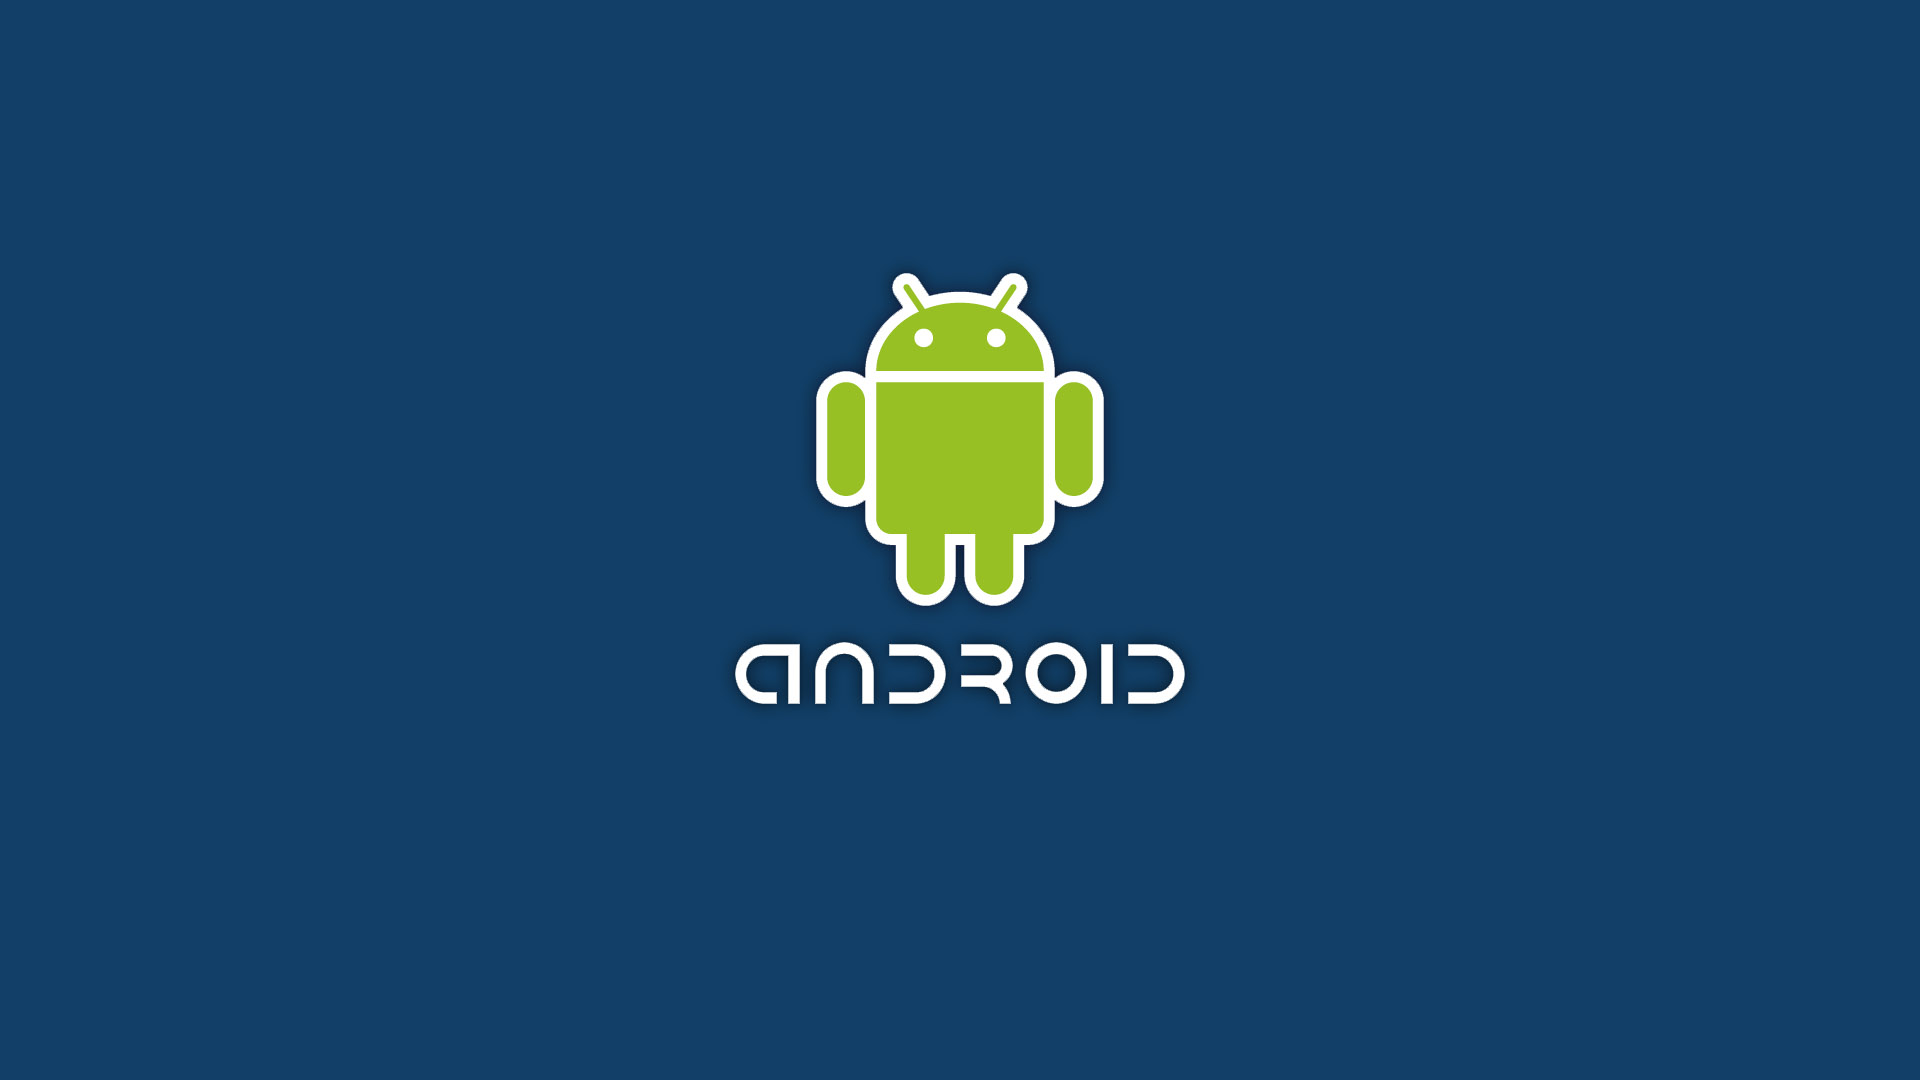 android mobile logo 1920x1080